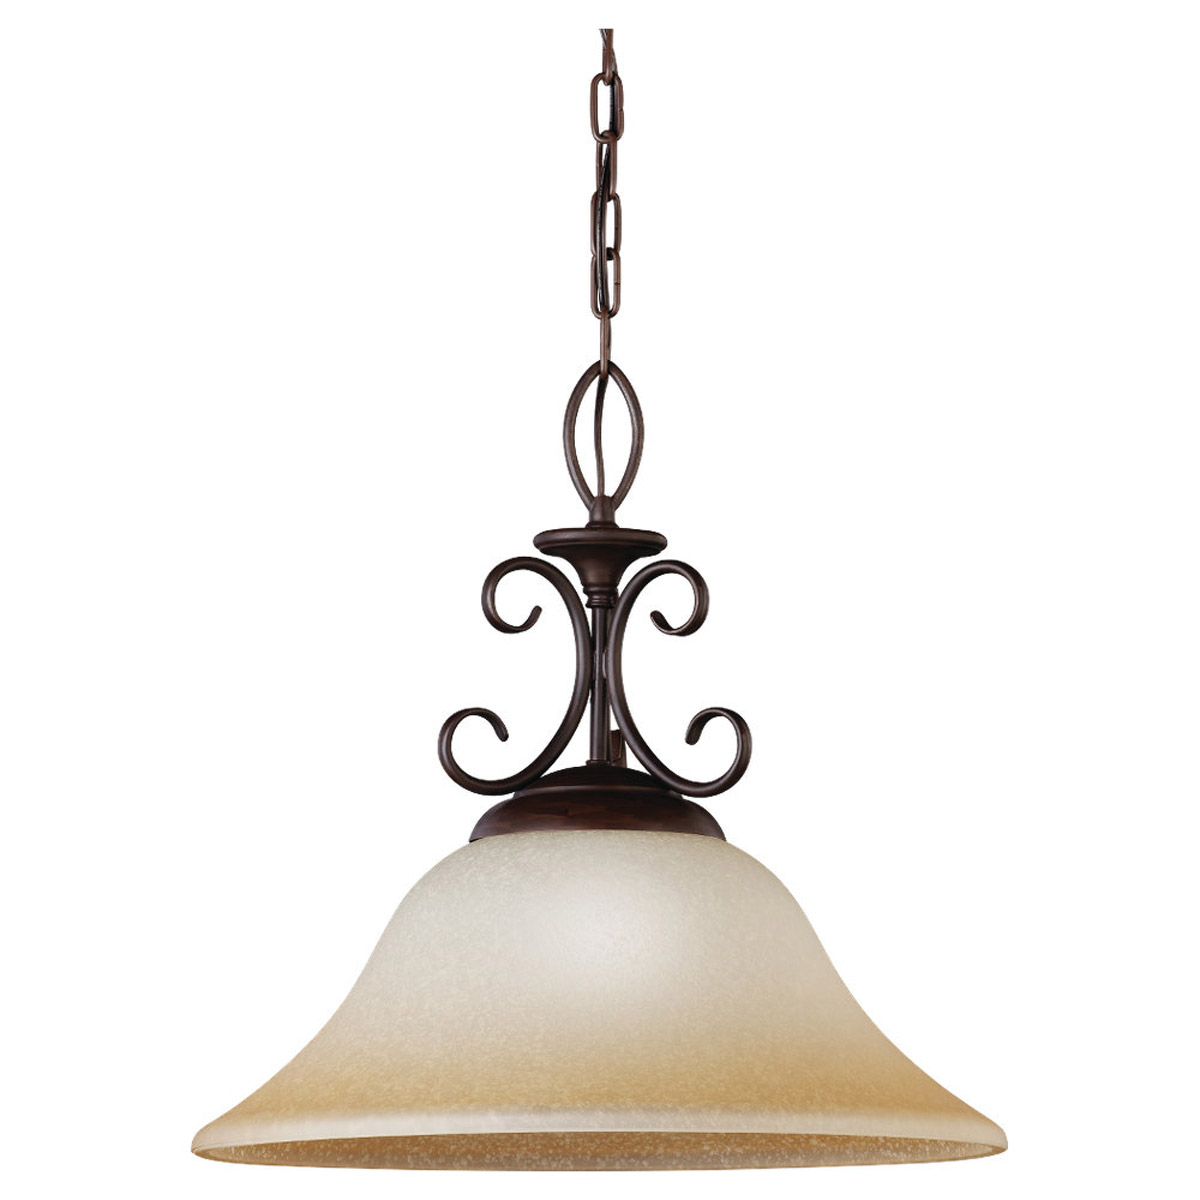 Sea Gull Lighting Montclaire 1 Light Pendant in Olde Iron 65105-72 photo